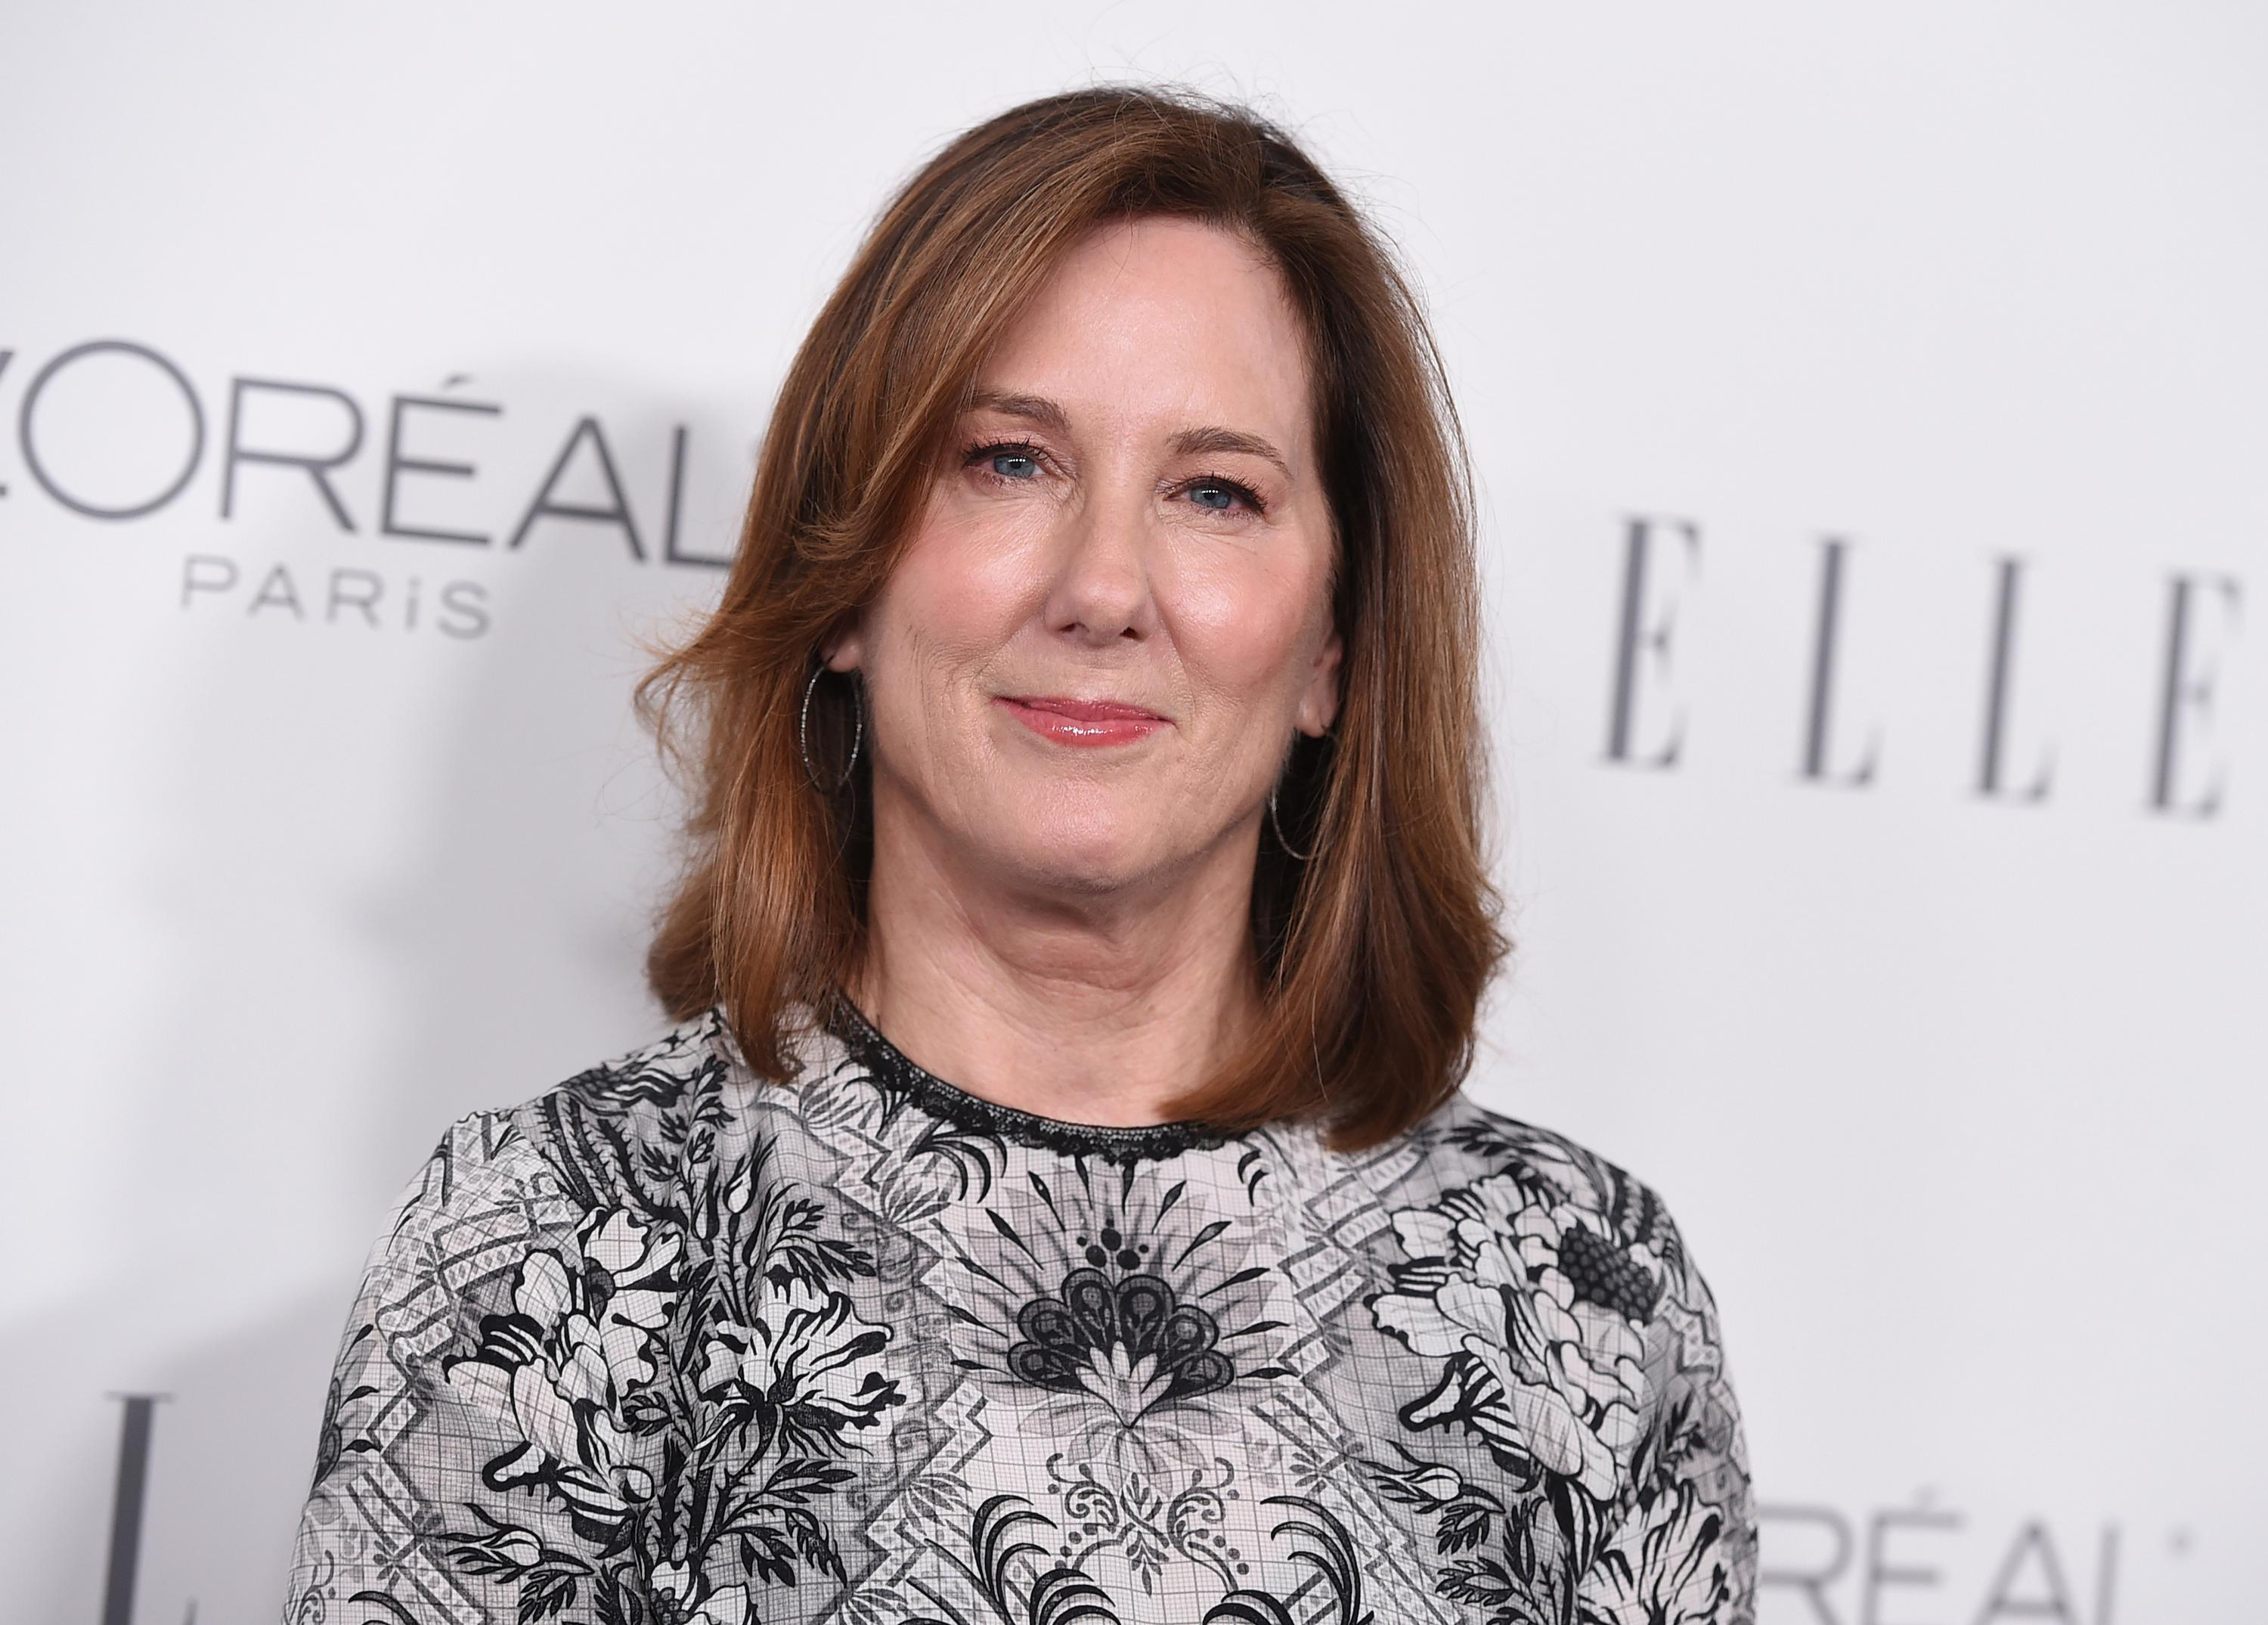 "FILE - In this Oct. 16, 2017 file photo, Kathleen Kennedy arrives at the 24th annual ELLE Women in Hollywood Awards at the Four Seasons Hotel Beverly Hills, in Los Angeles. Hollywood executives and other major players in entertainment have established a commission to be chaired by Anita Hill that intends to combat sexual misconduct and gender inequities across the industry. The group grew out of a meeting called by ""Star Wars"" producer Kennedy and several other prominent women in the entertainment industry. (Photo by Jordan Strauss/Invision/AP, File)"